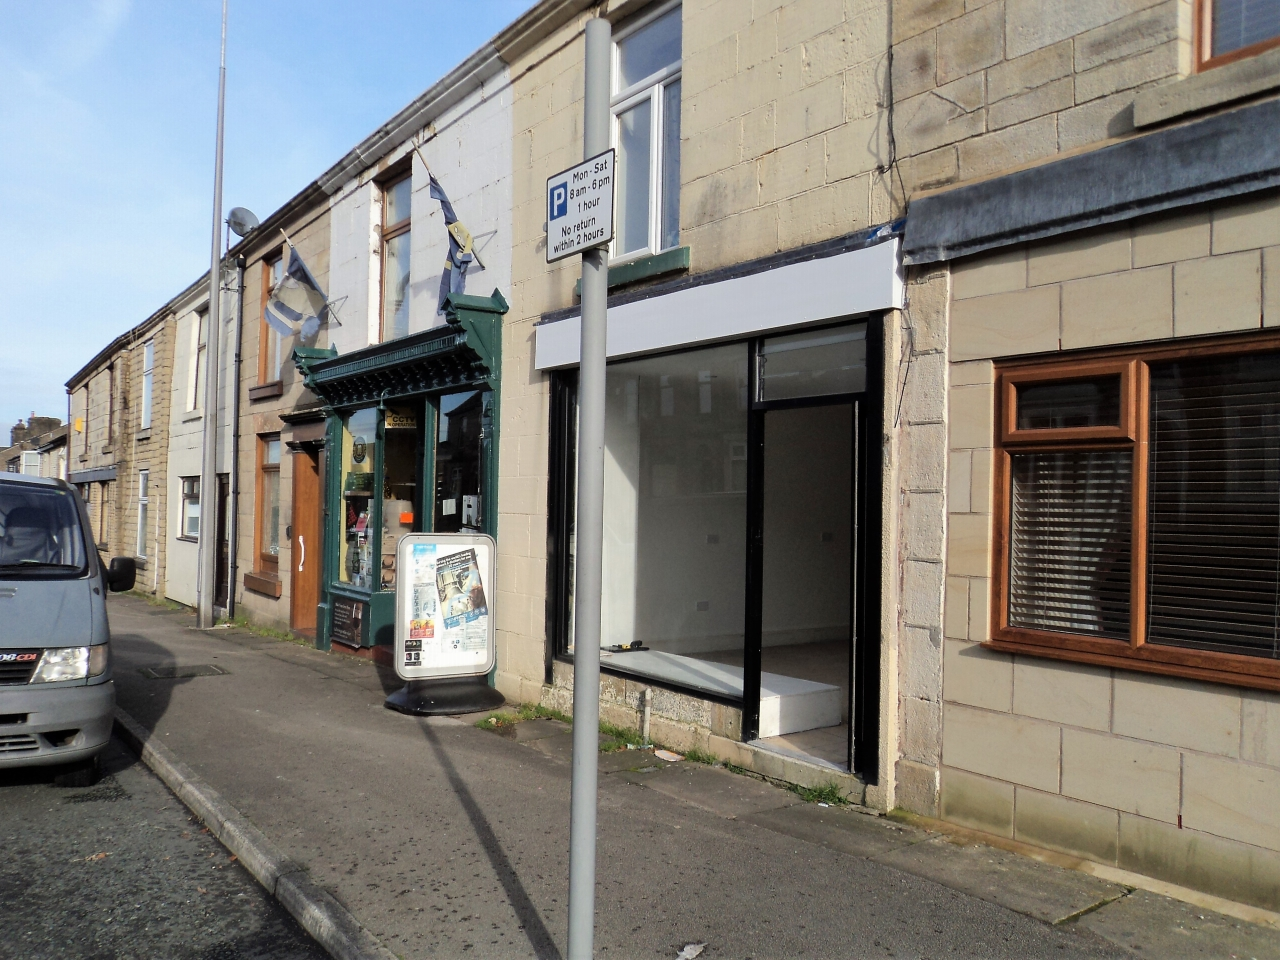 2 Bedroom Mid Terraced House For Sale - Image 1